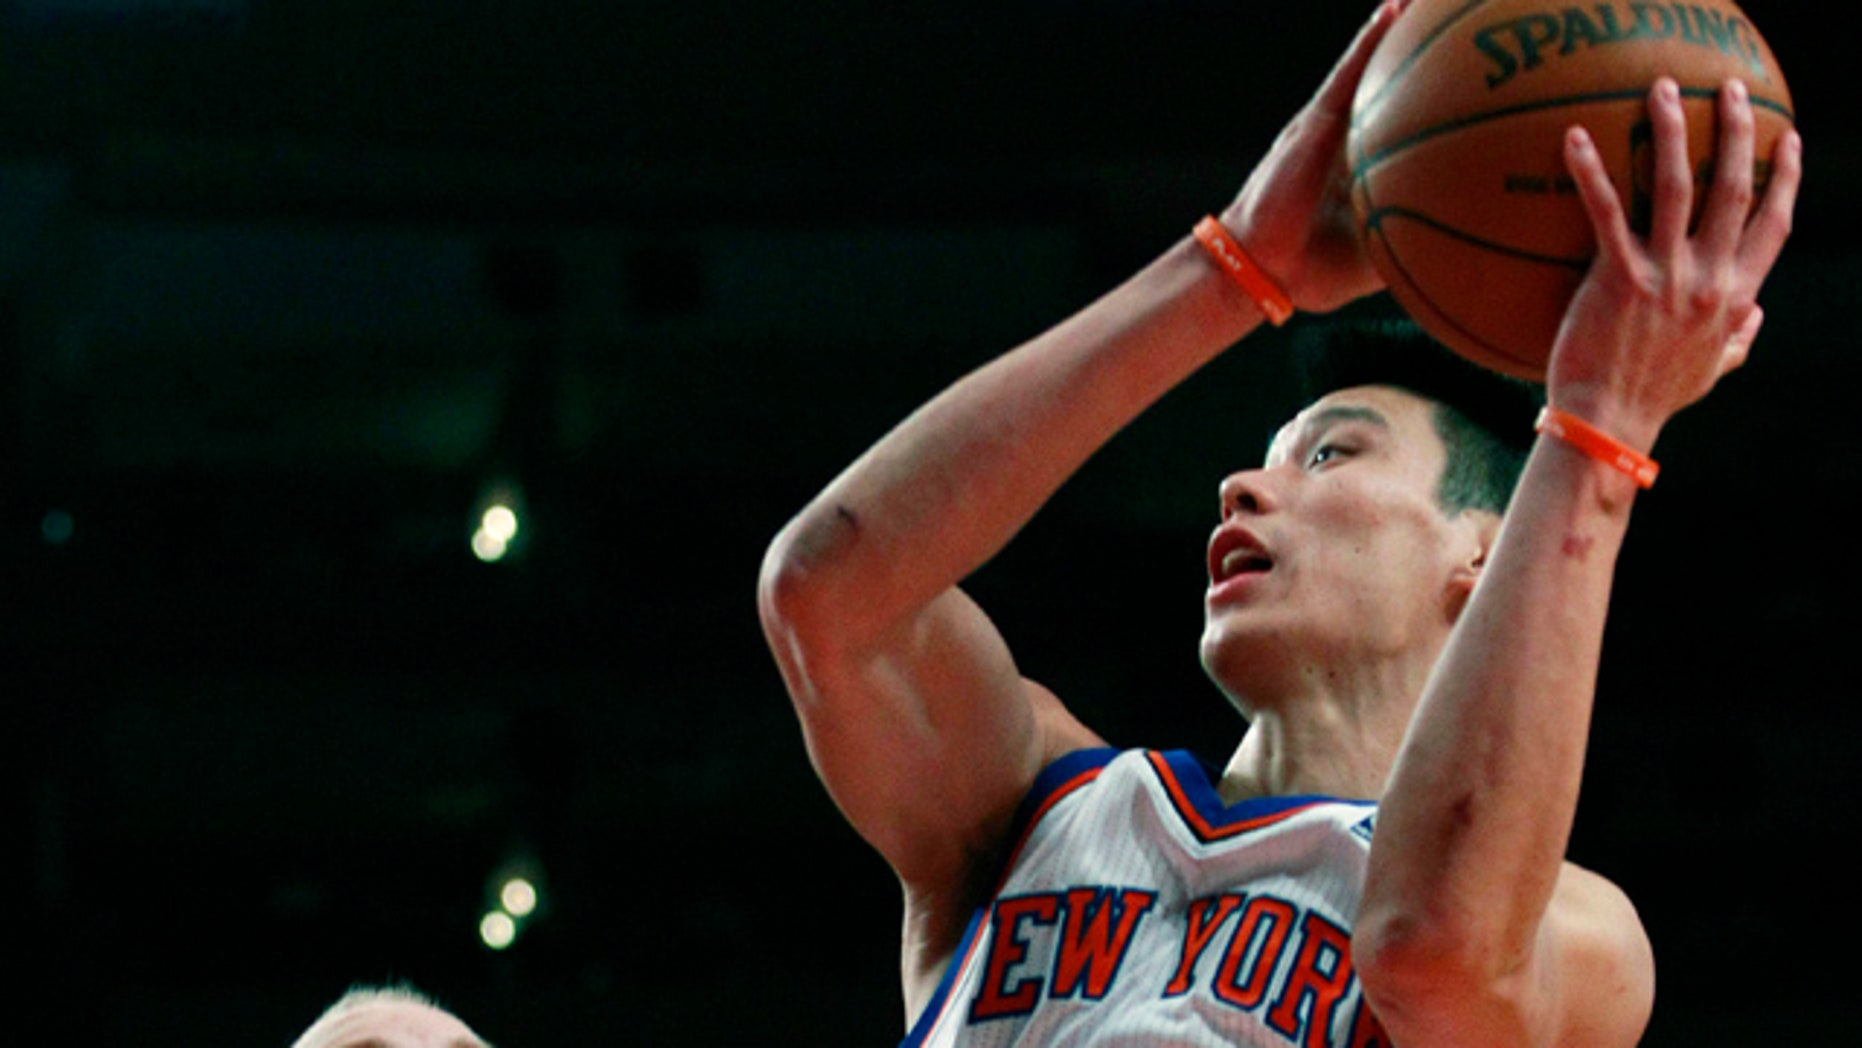 Feb. 17: New York Knicks' Jeremy Lin (17) drives against New Orleans Hornets' Chris Kaman during the first half of an NBA basketball game in New York.